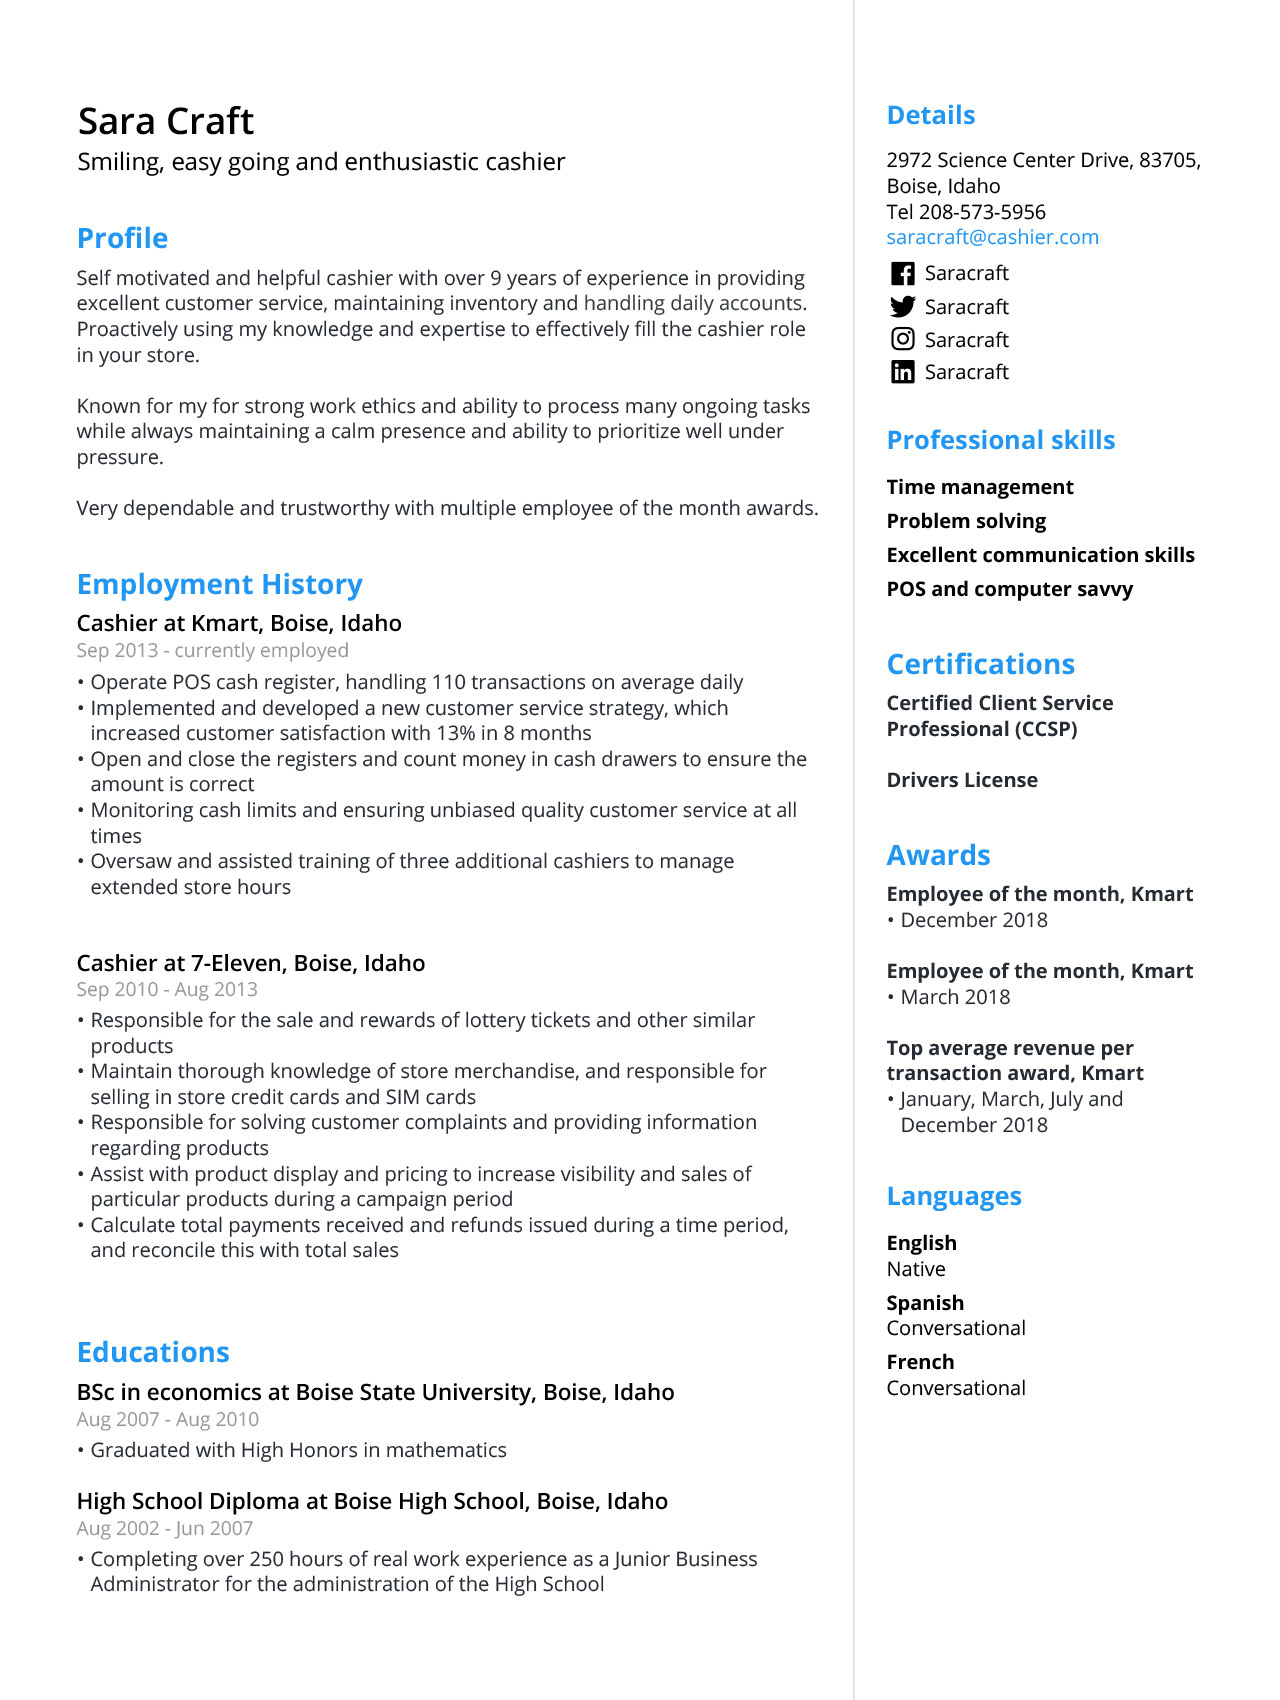 Cashier Resume Sample Template 2020 Guide Jofibo